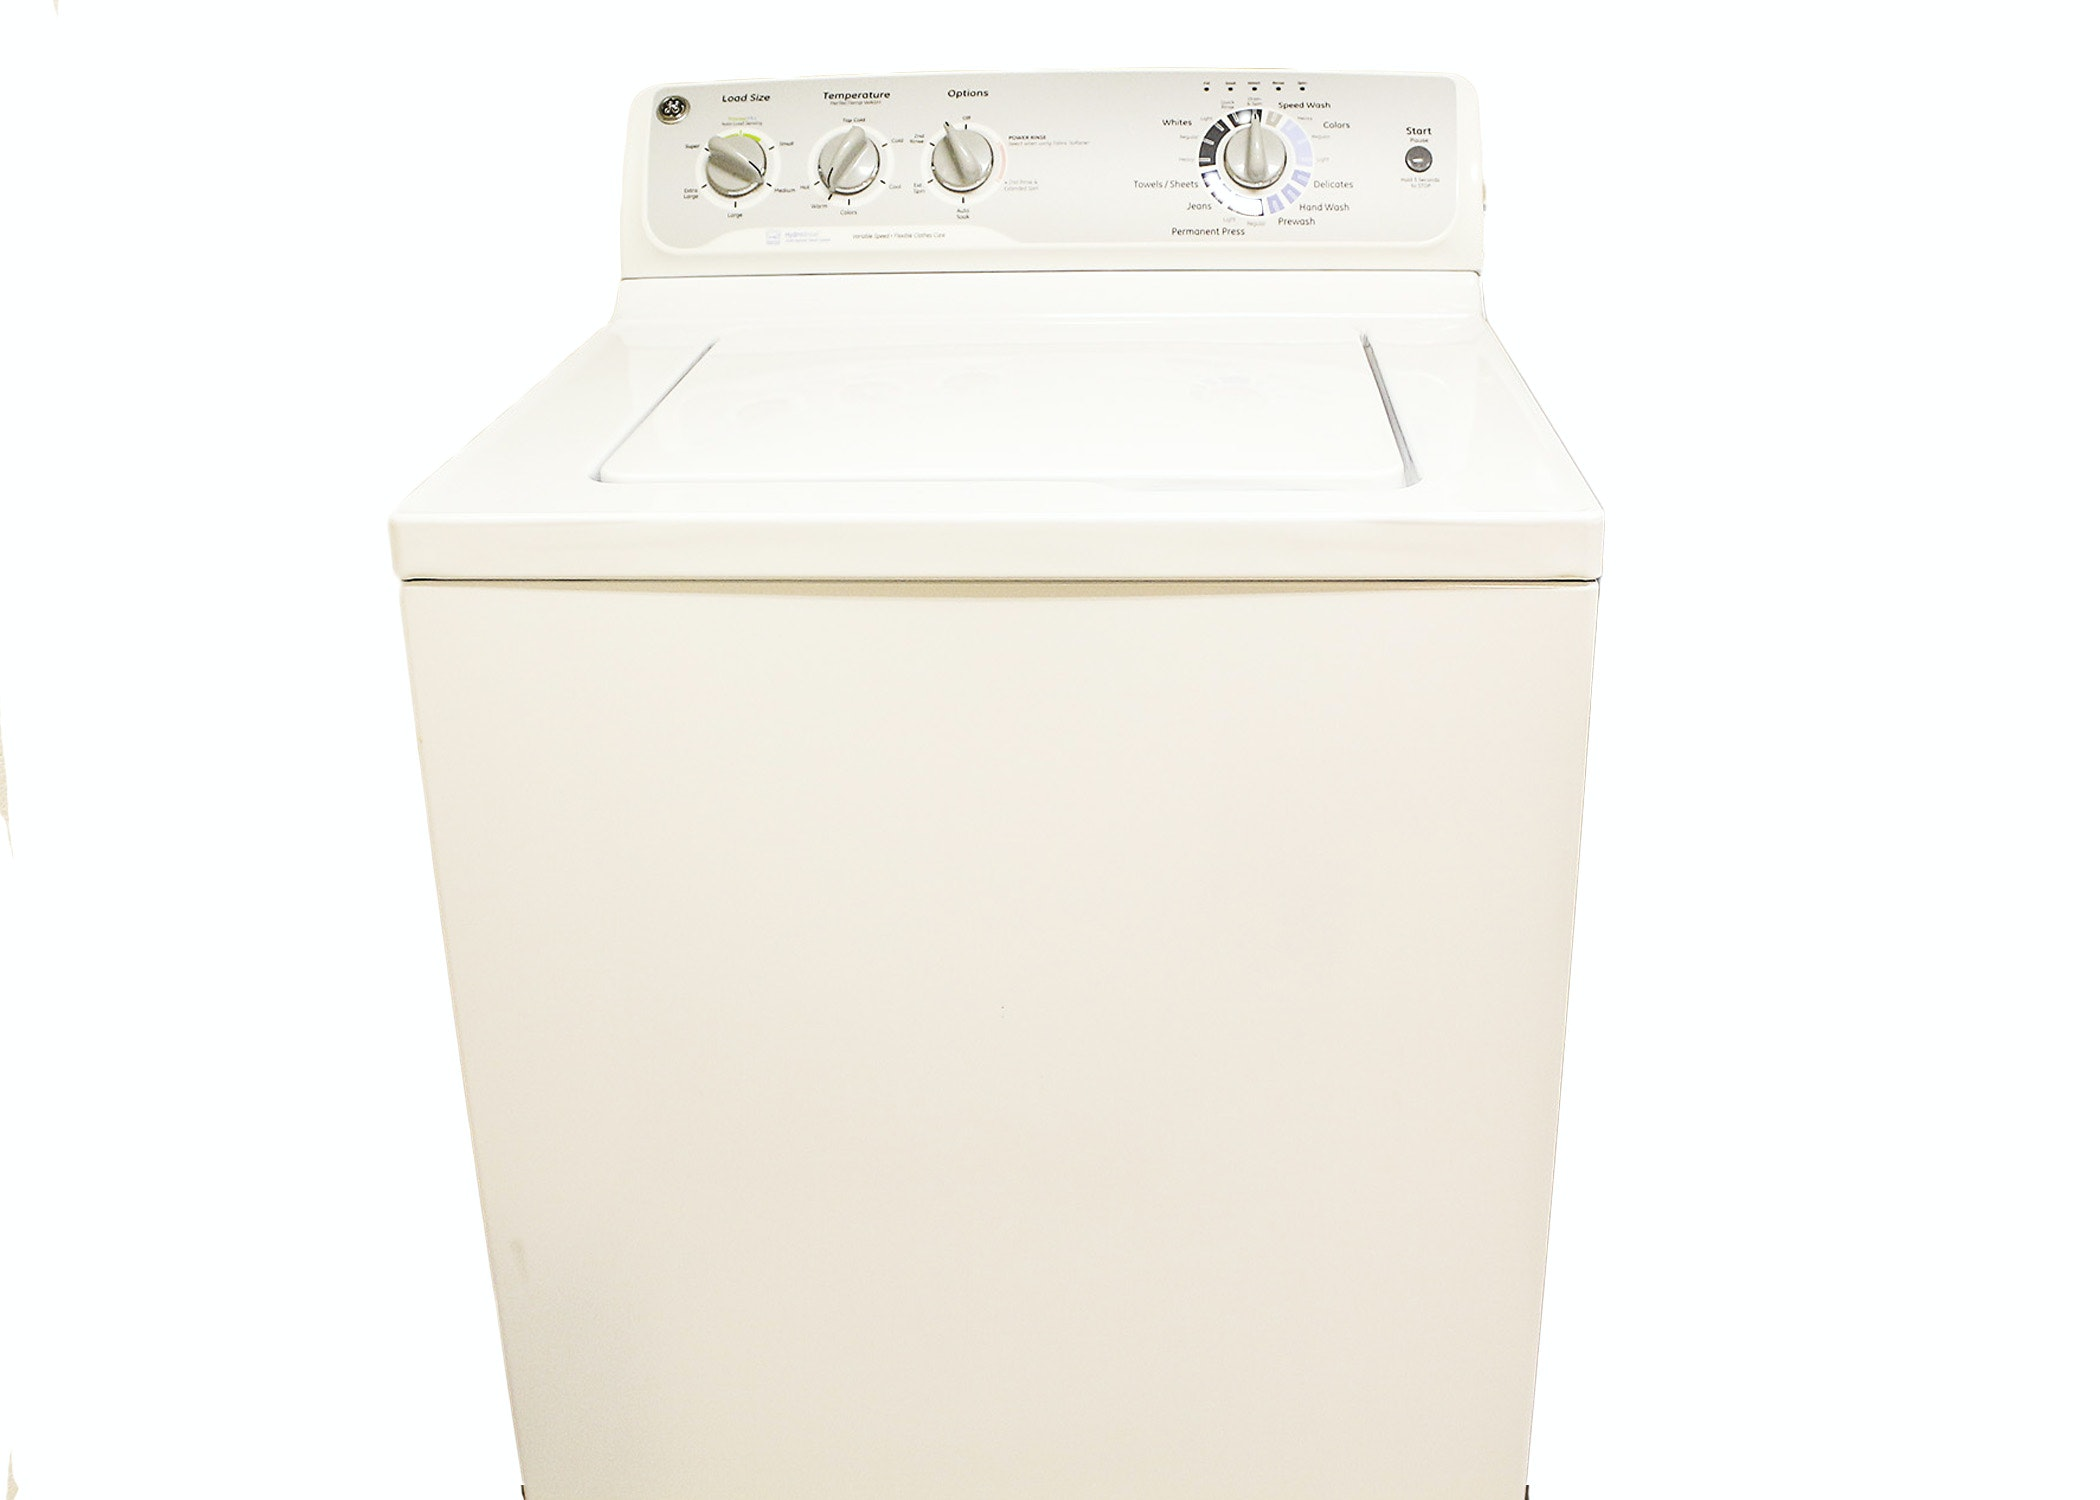 ge hydro heater washing machine manual